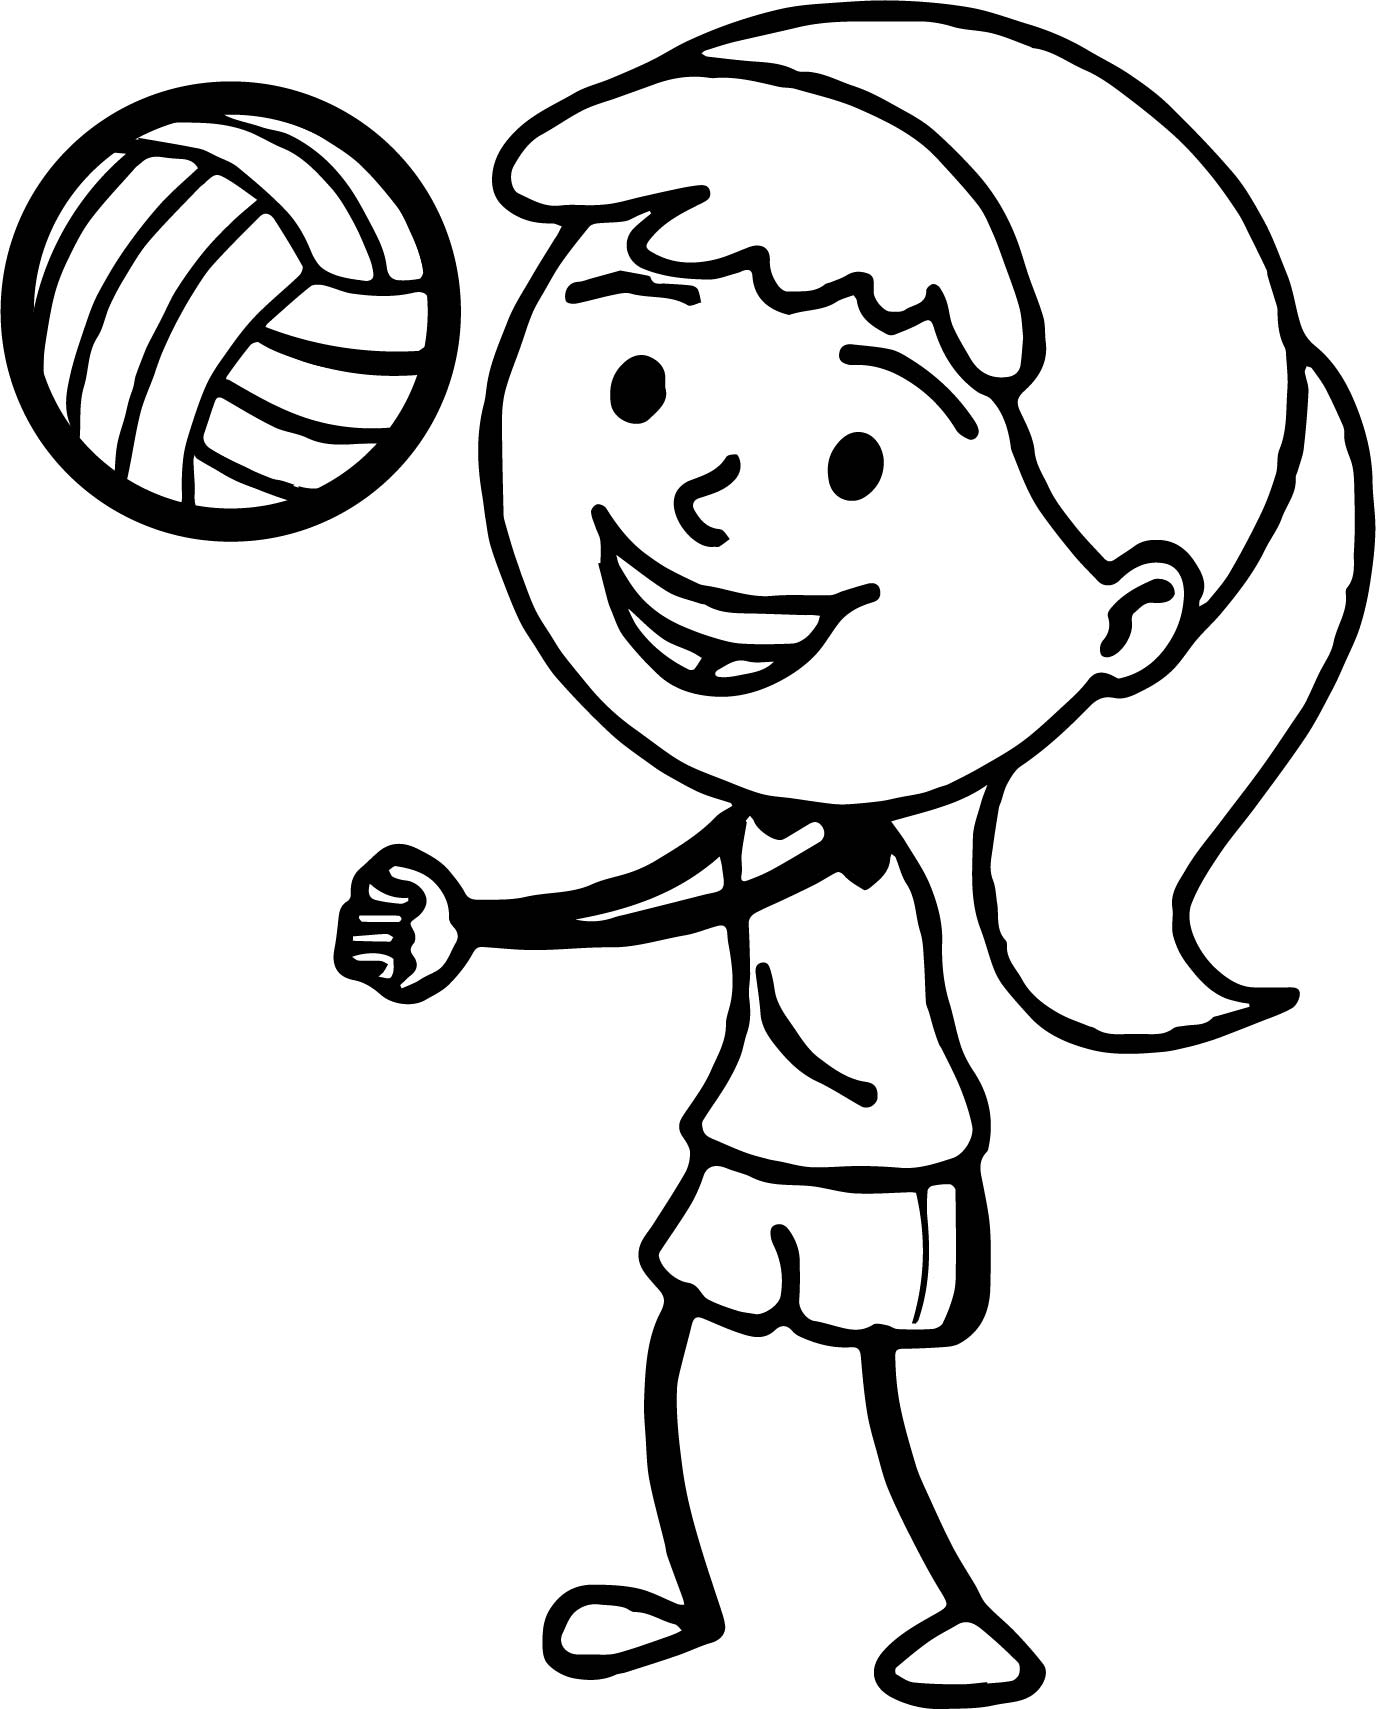 coloring volleyball volleyball coloring page download print online volleyball coloring